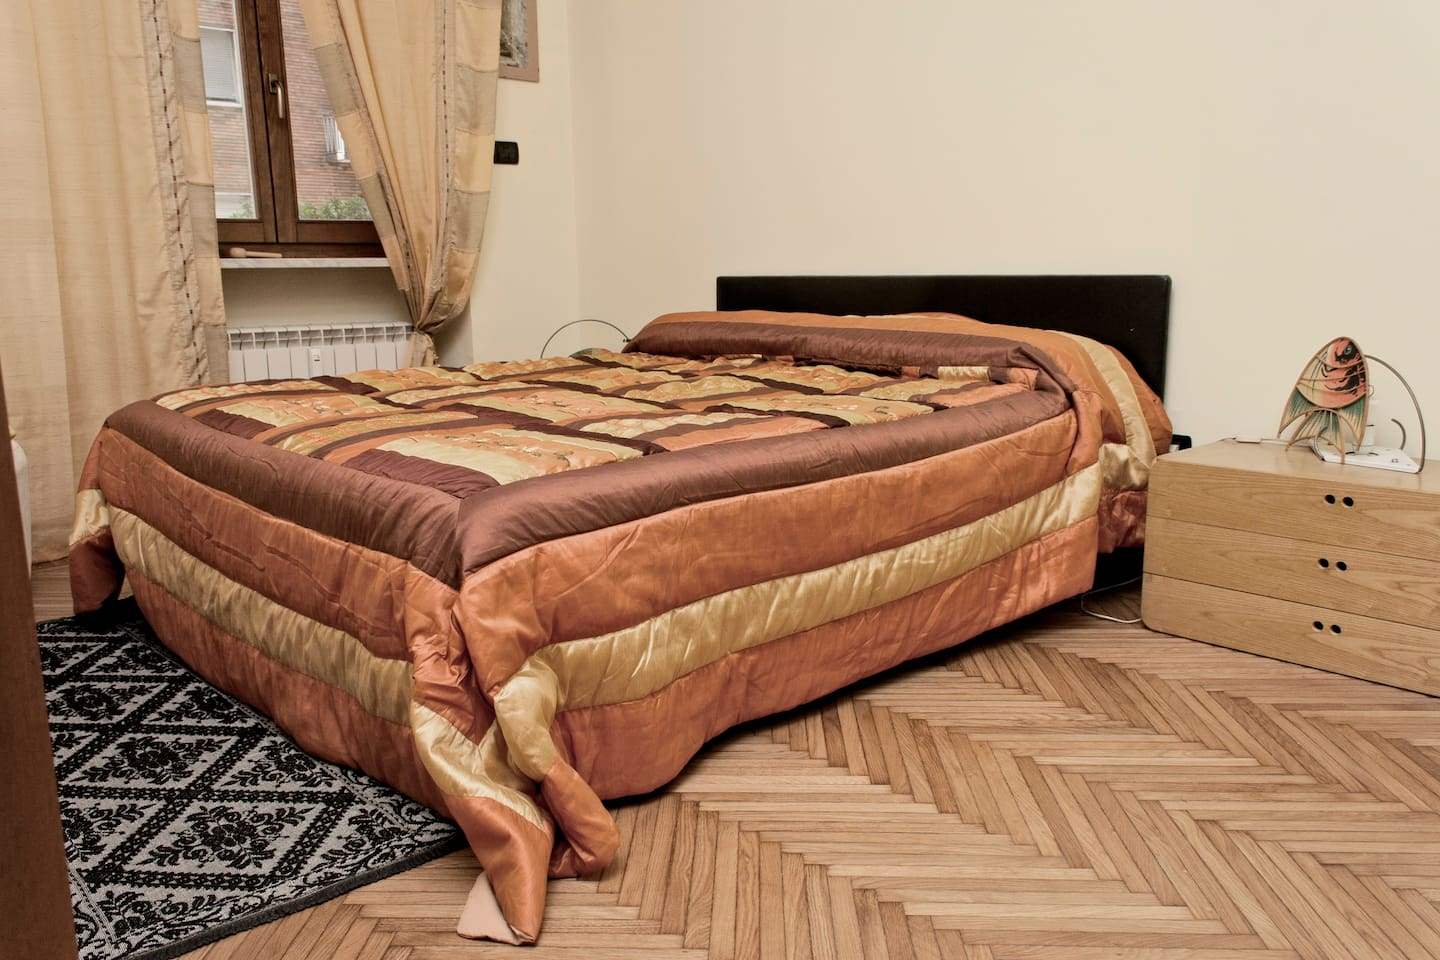 La camera con letto matrimoniale  - The room with doublebed